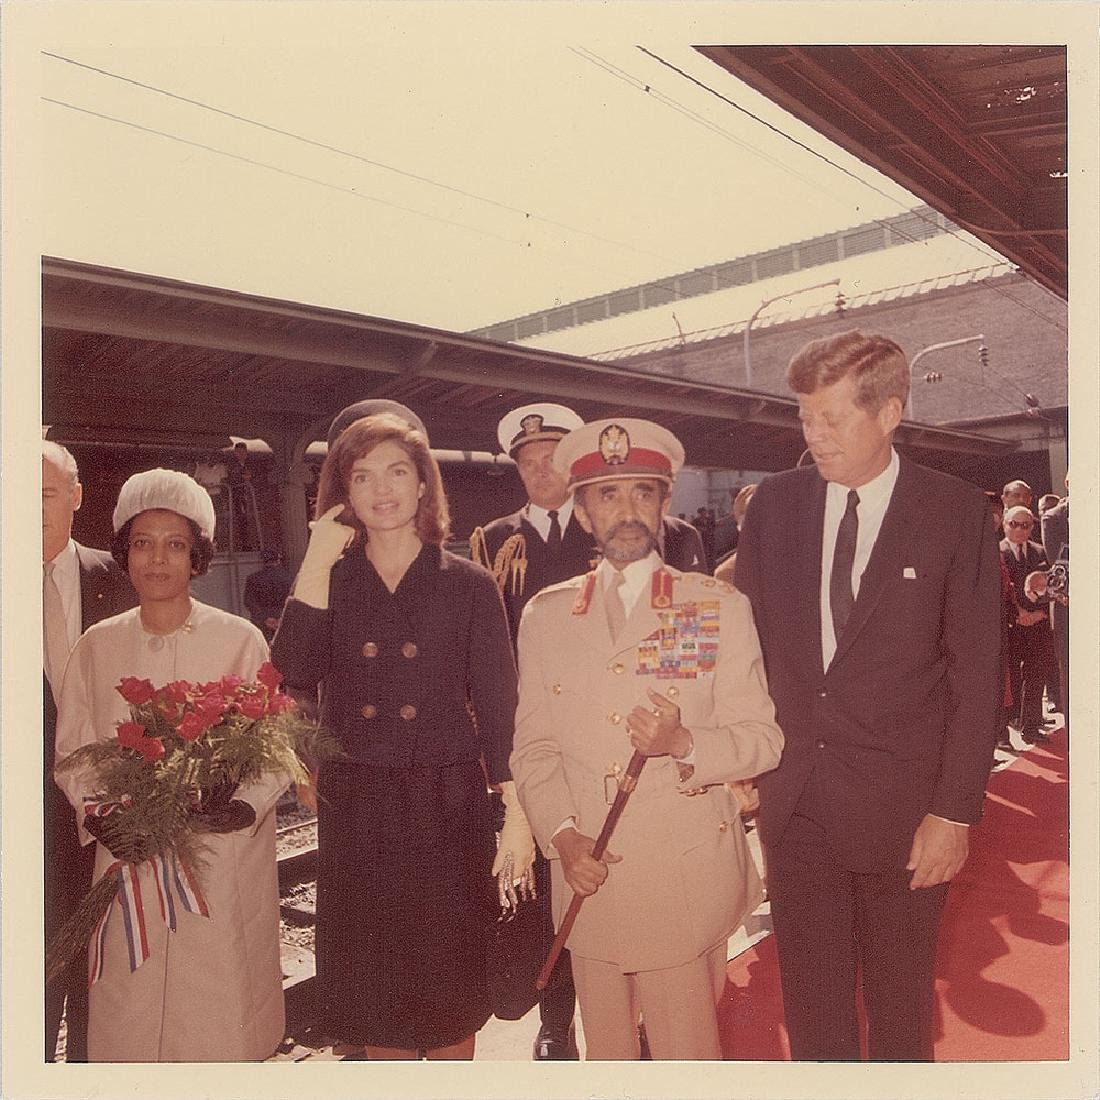 John F. Kennedy and Haile Selassie Original Vintage Photograph by Cecil Stoughton